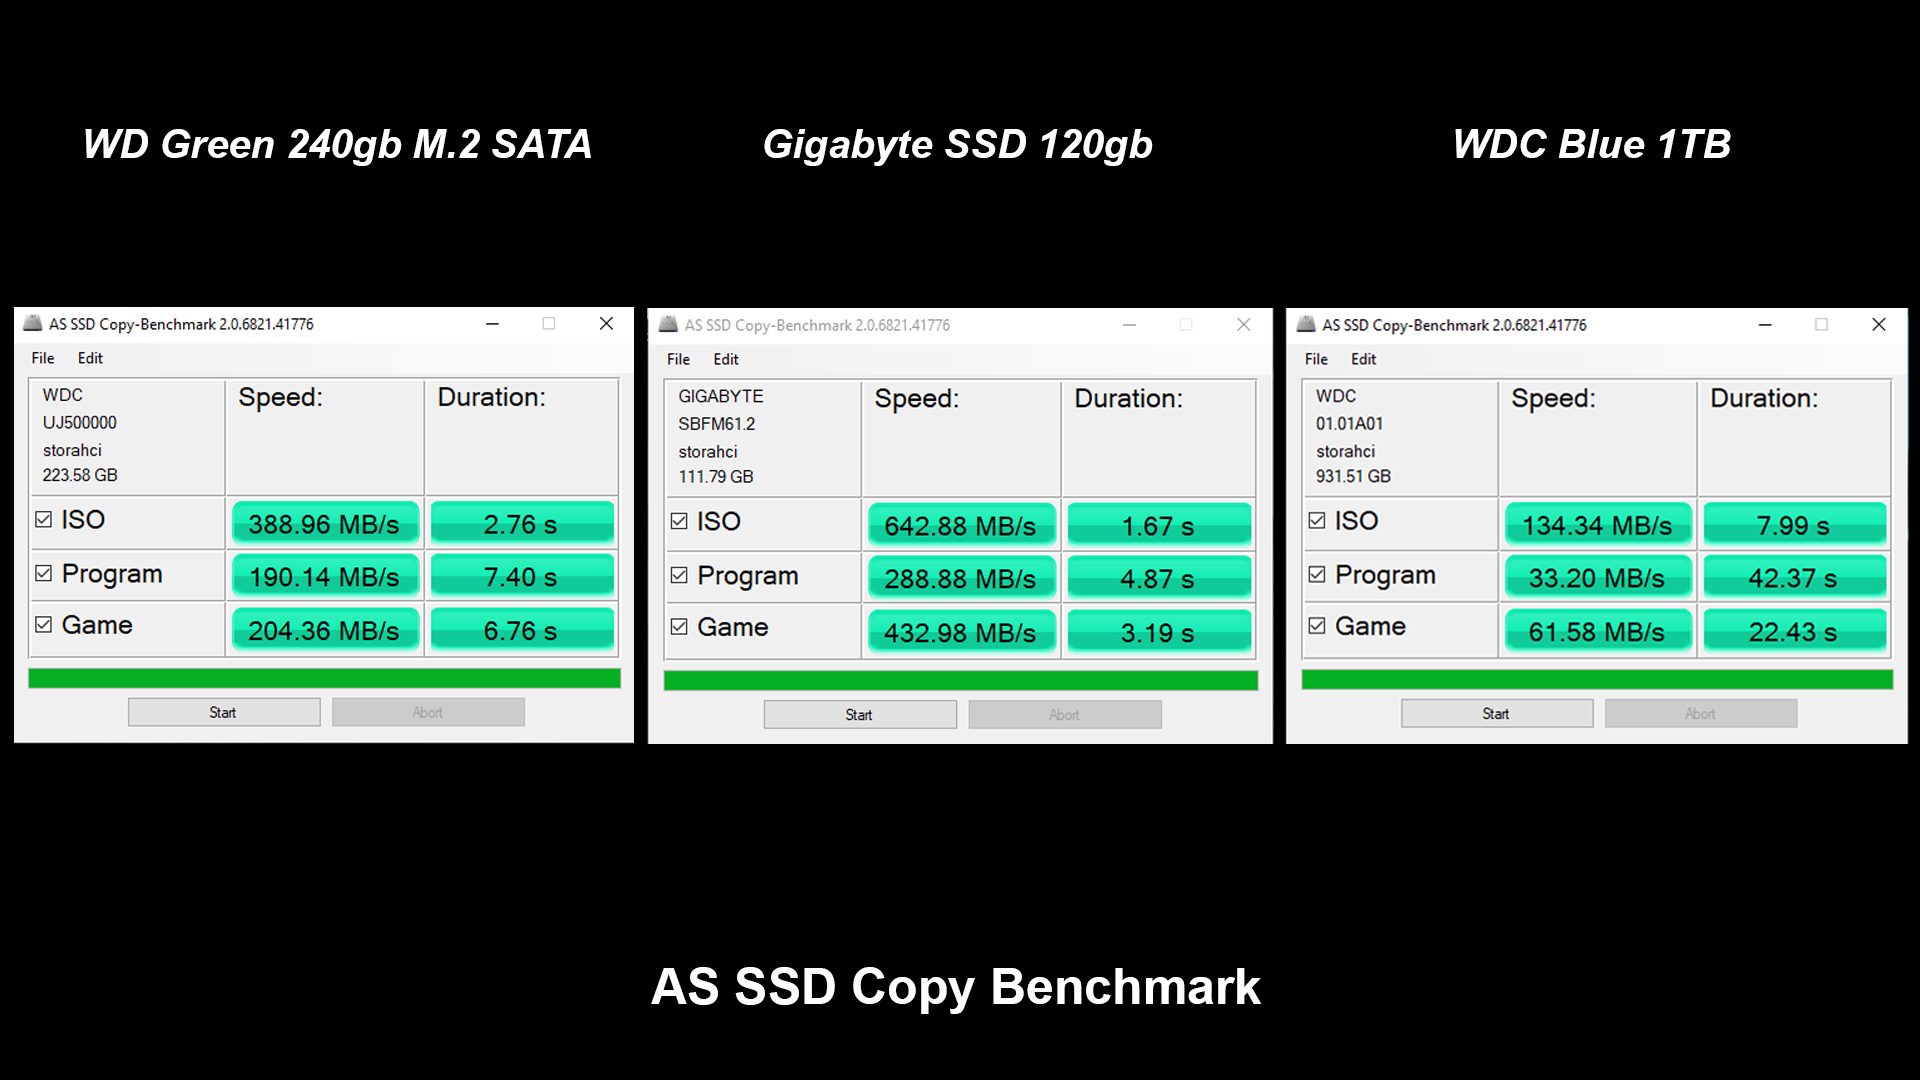 AS SSD Copy Benchmark